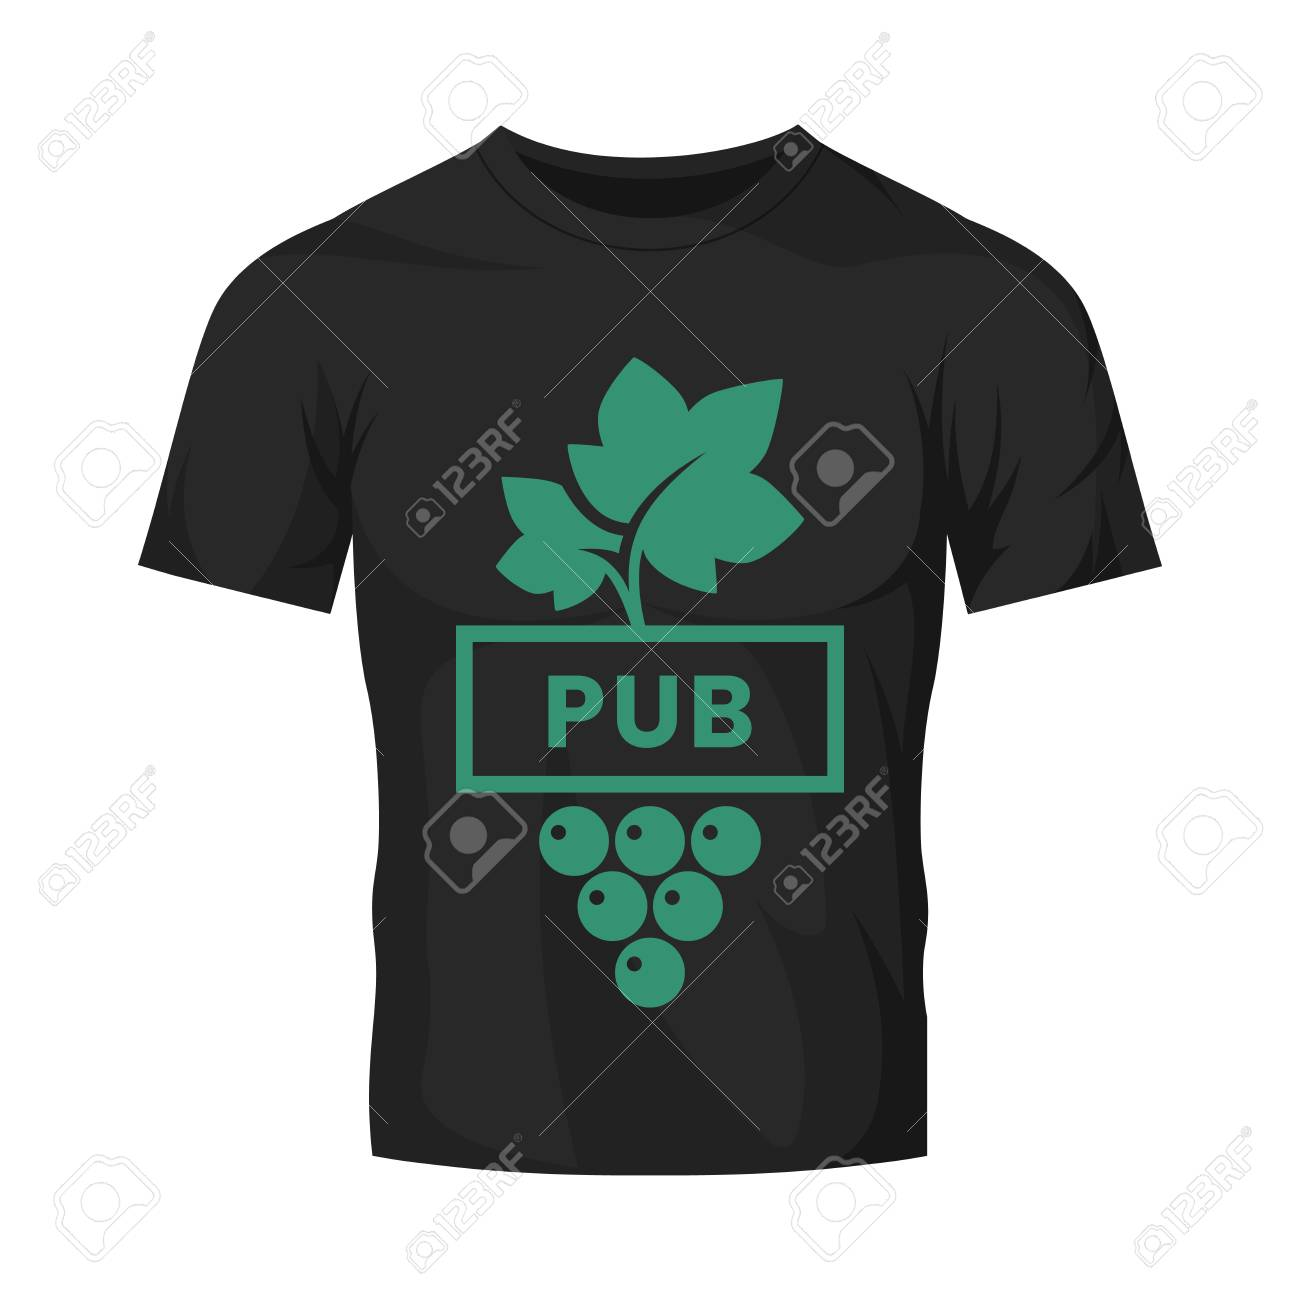 Modern wine vector logo sign for tavern, restaurant, house, shop, store, club and cellar isolated on black t-shirt mock up. Premium quality vinery logotype illustration. Fashion badge design template. - 126498890